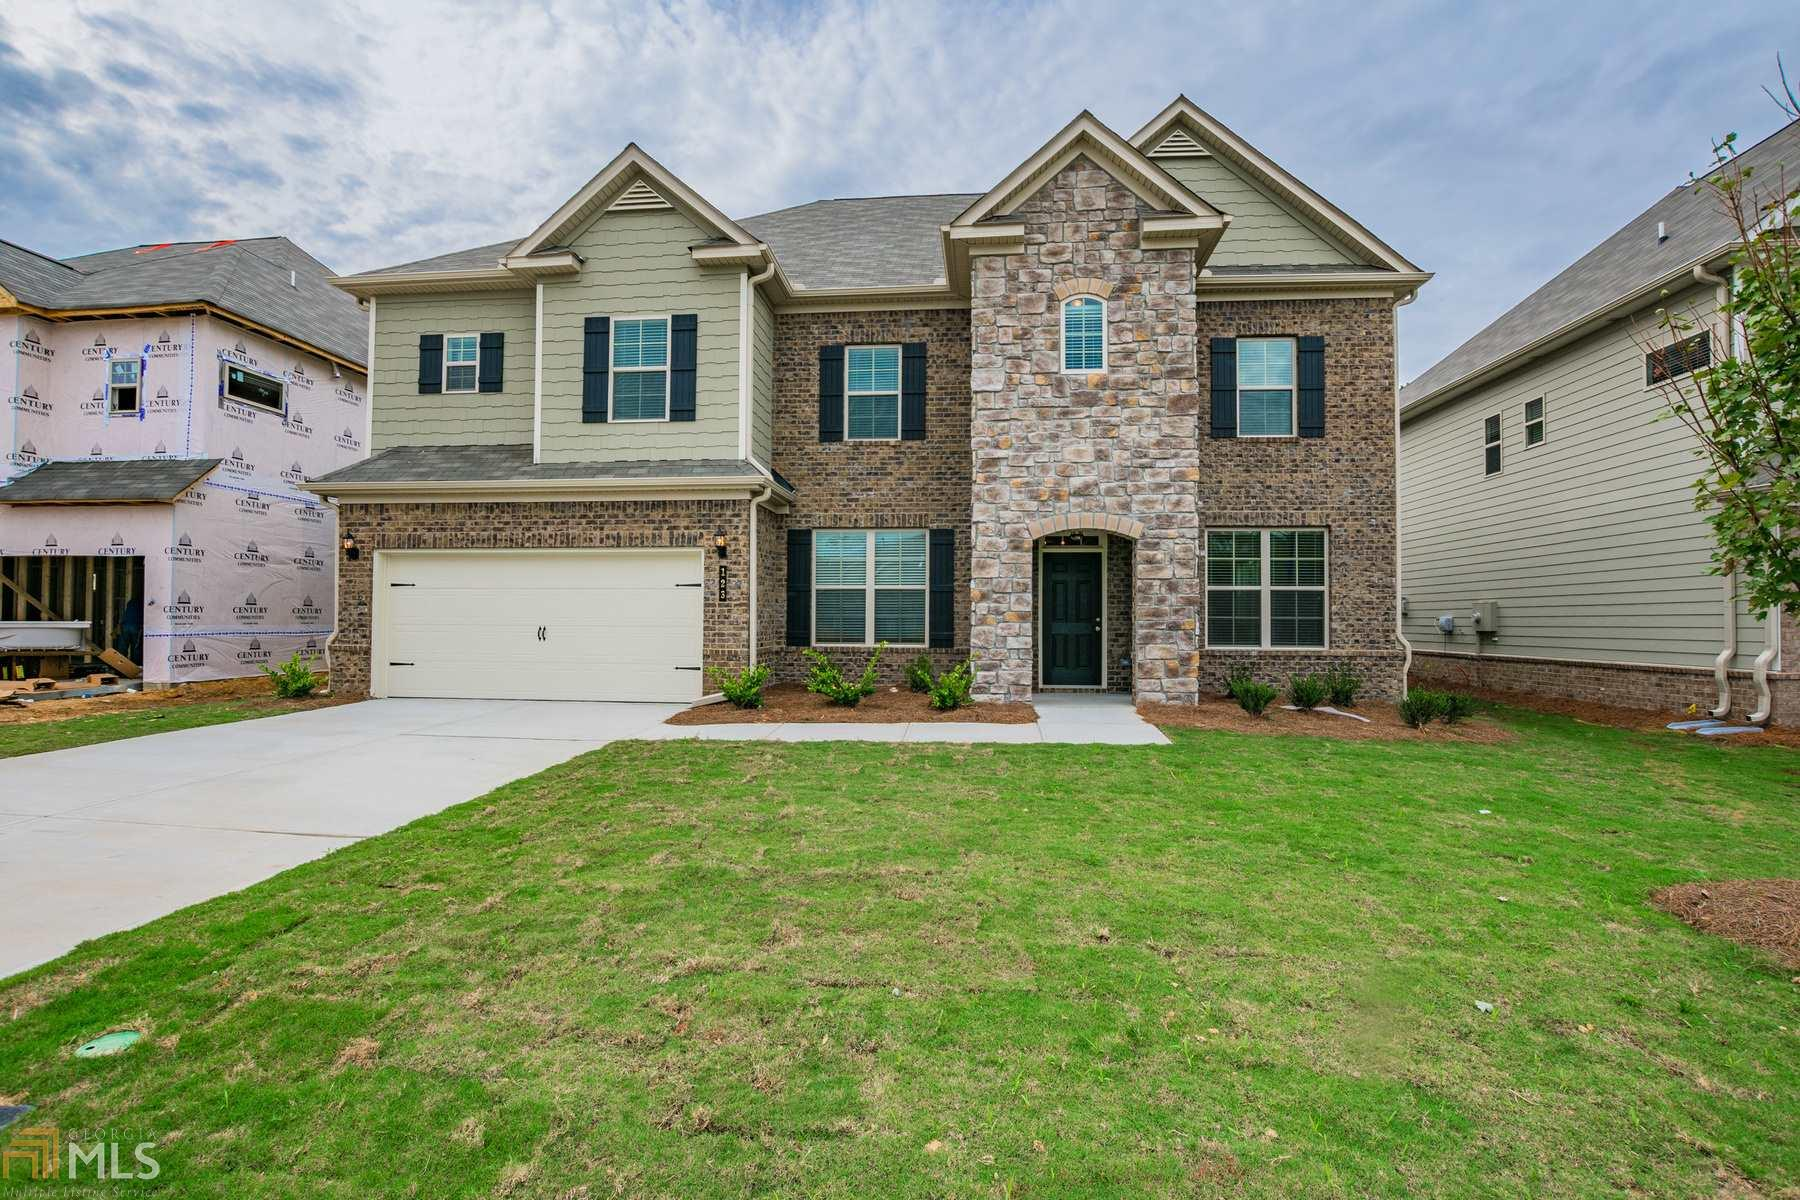 123 NW Oak Farm Ct, Loganville, GA 30052